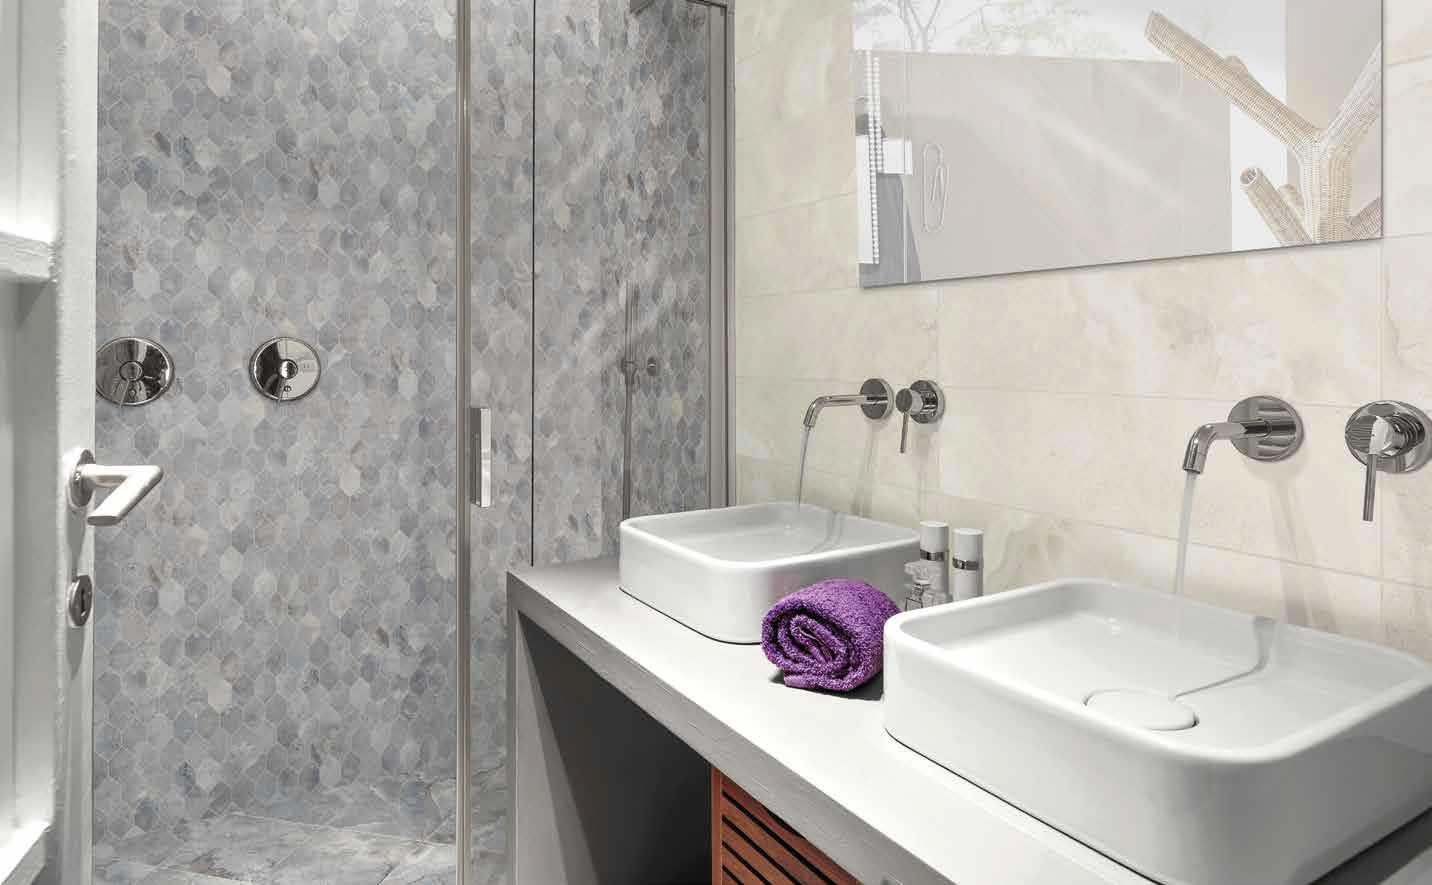 Rialto Blanc Bathroom with Sky Feature